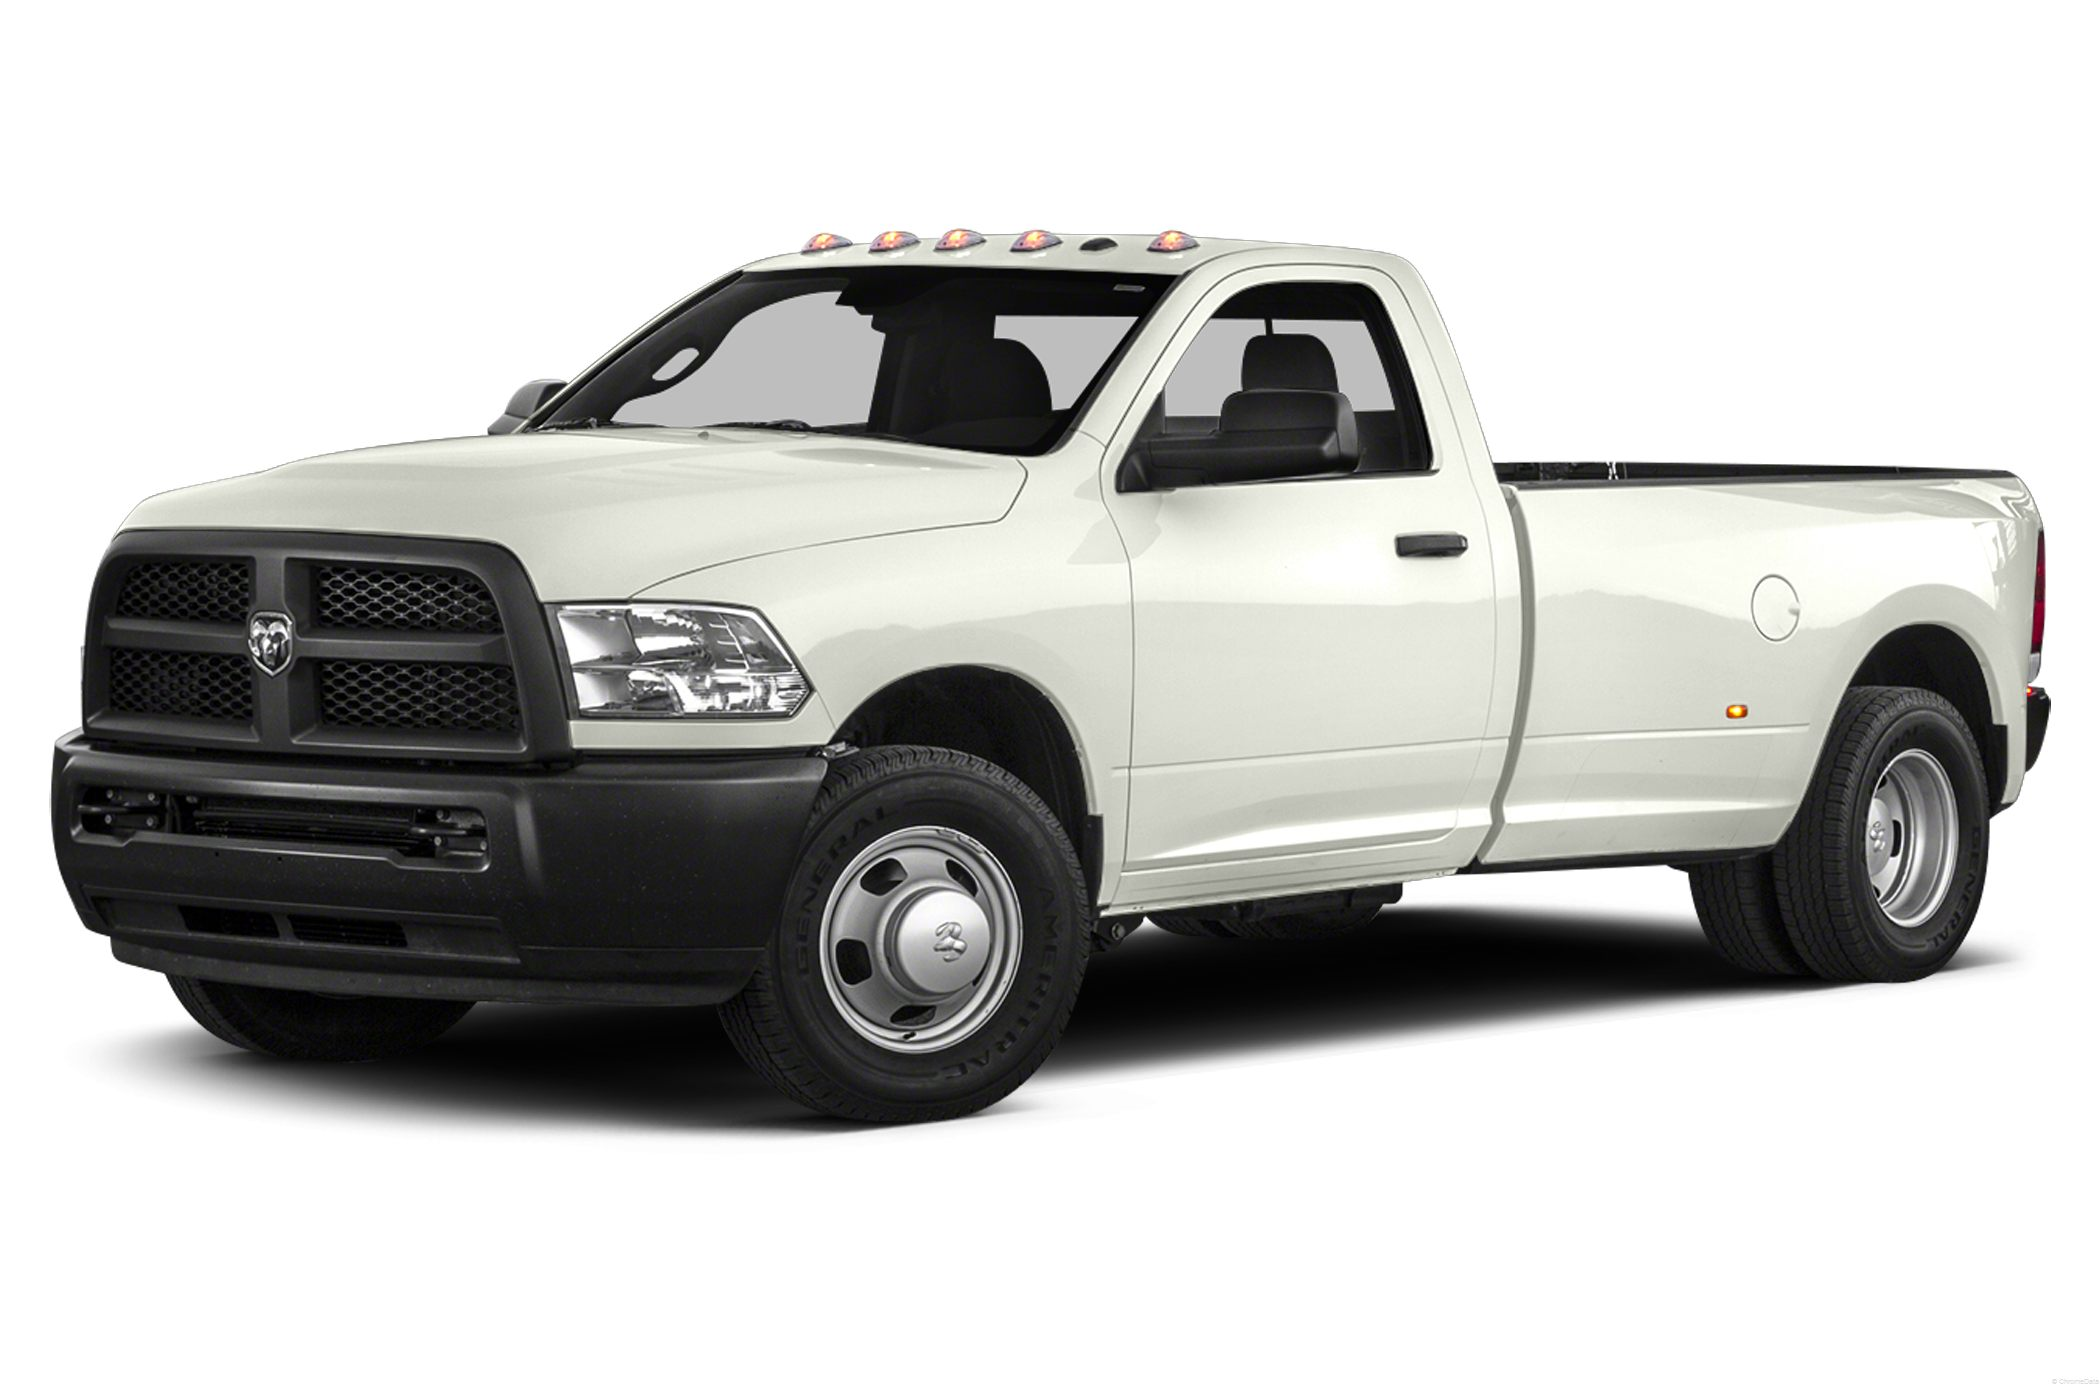 RAM Trucks 3500 Regular Cab specs - 2013, 2014, 2015, 2016 - autoevolution